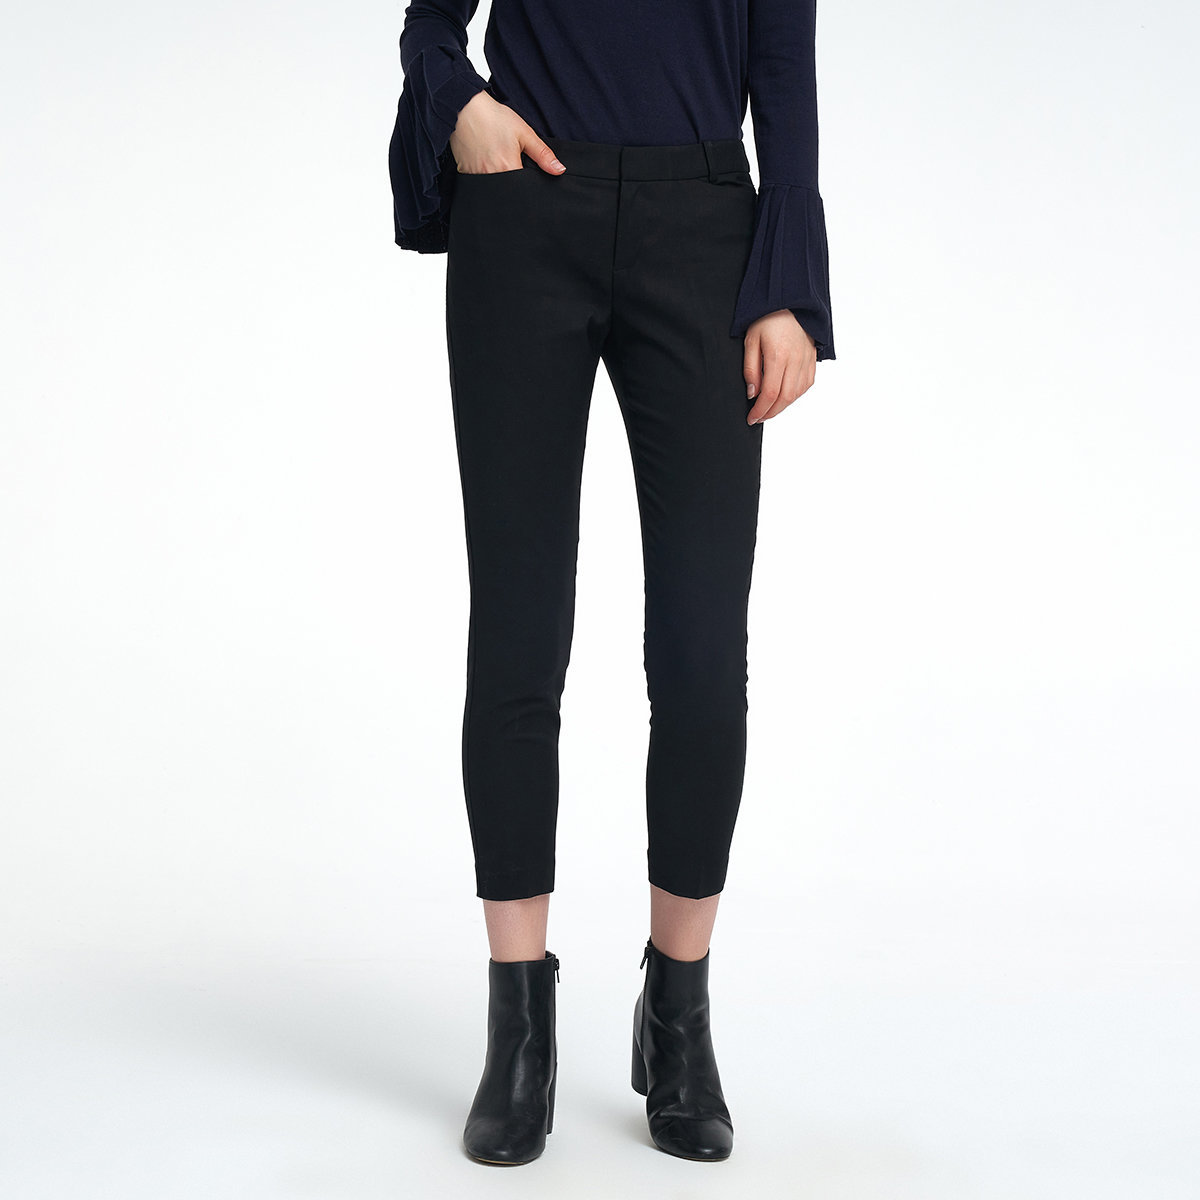 WOMEN'S PANTS(black)